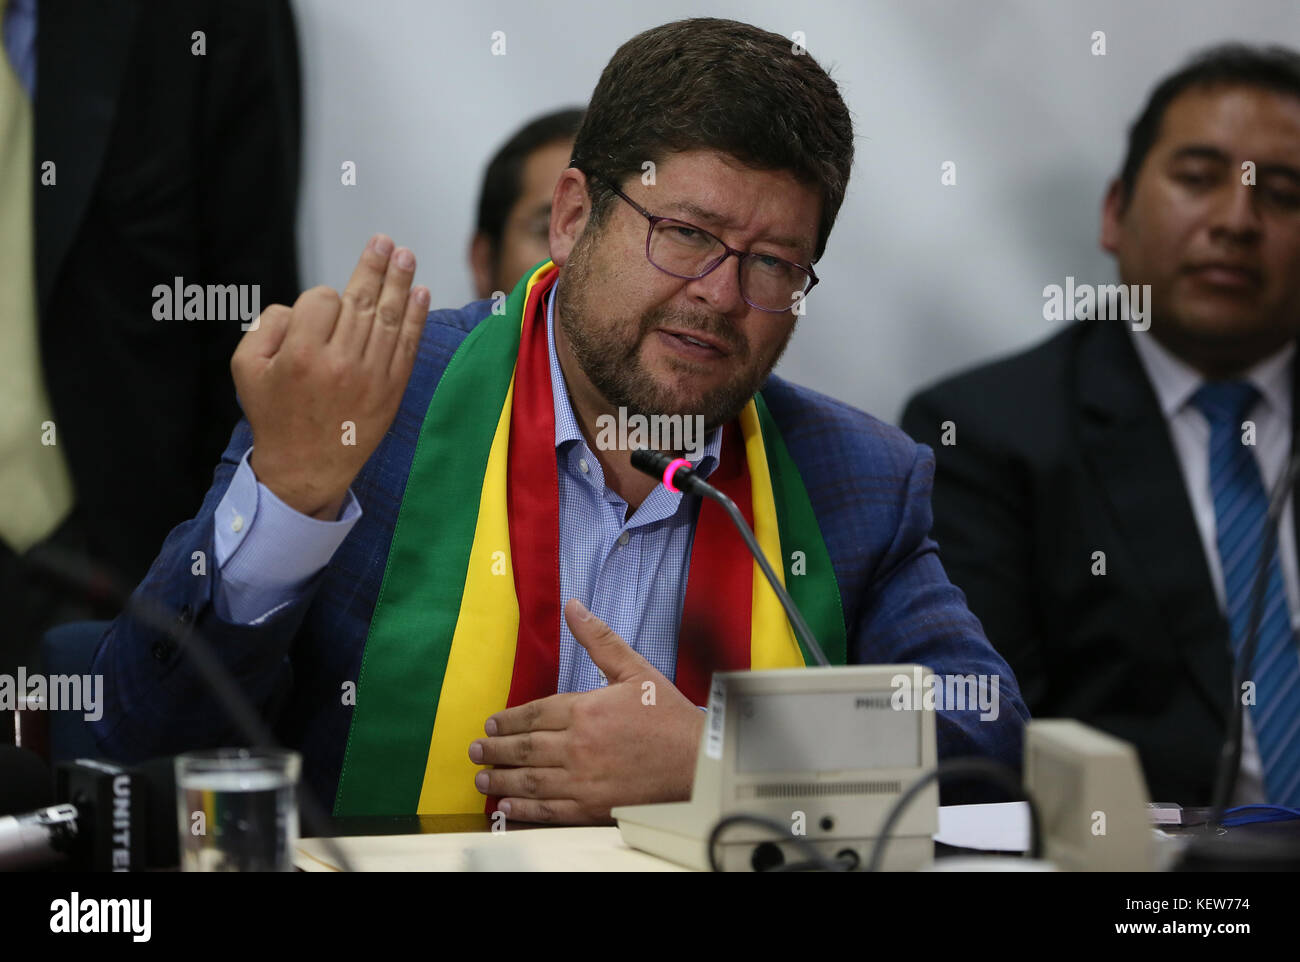 La Paz, Bolivia. 23rd Oct, 2017. Former presidential candidate Samuel Doria Medina speaks before the Special Commission - Stock Image